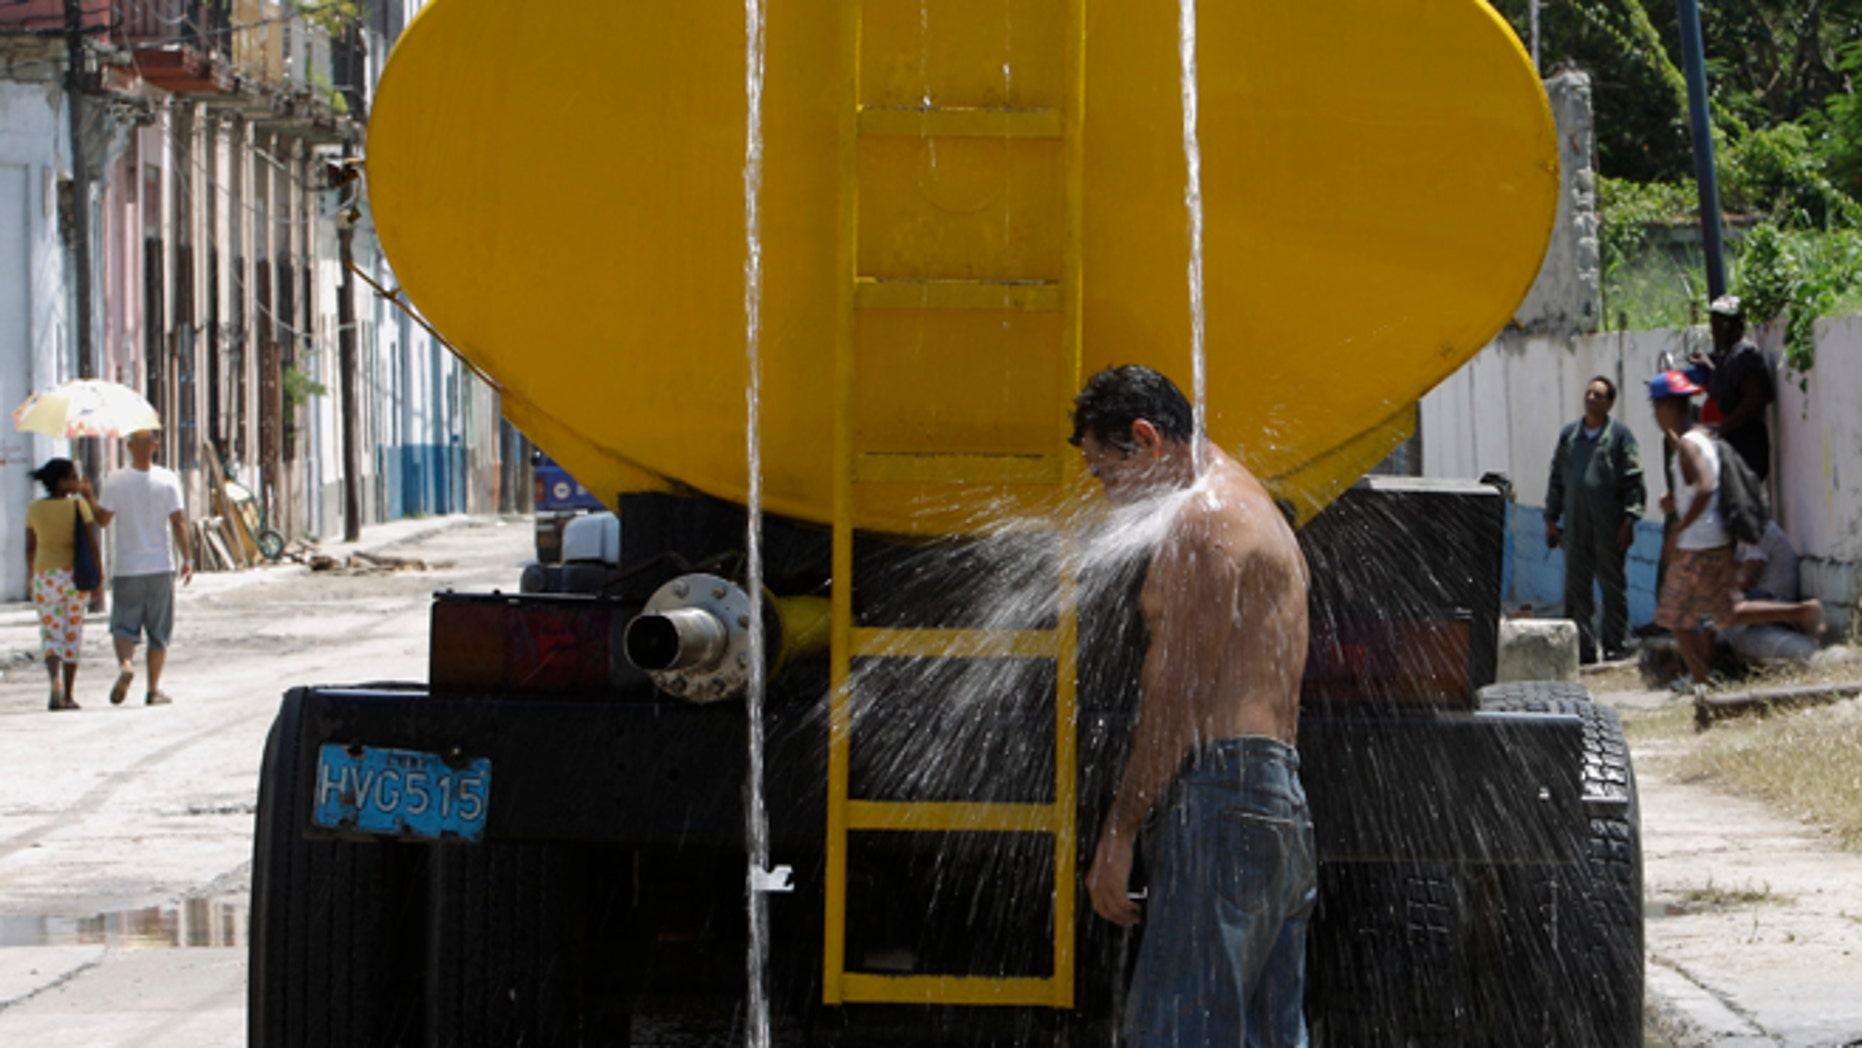 """A man cools himself in water overflowing from a parked truck that delivers drinking water in Havana, Cuba, Wednesday, Aug. 21, 2013. The United States has issued an advisory for travelers to Cuba after several foreign visitors were sickened by cholera in recent weeks. """"We urge you to follow public health recommendations and guidelines, such as safe food and water precautions and frequent hand washing to help prevent cholera infection,"""" the diplomatic mission said in a statement published online. The embargo against Cuba bars most American tourism to the island, but hundreds of thousands of Cuban-Americans make legal family visits each year and increasing numbers of U.S. citizens are visiting through licensed cultural exchanges. (AP Photo/Franklin Reyes)"""